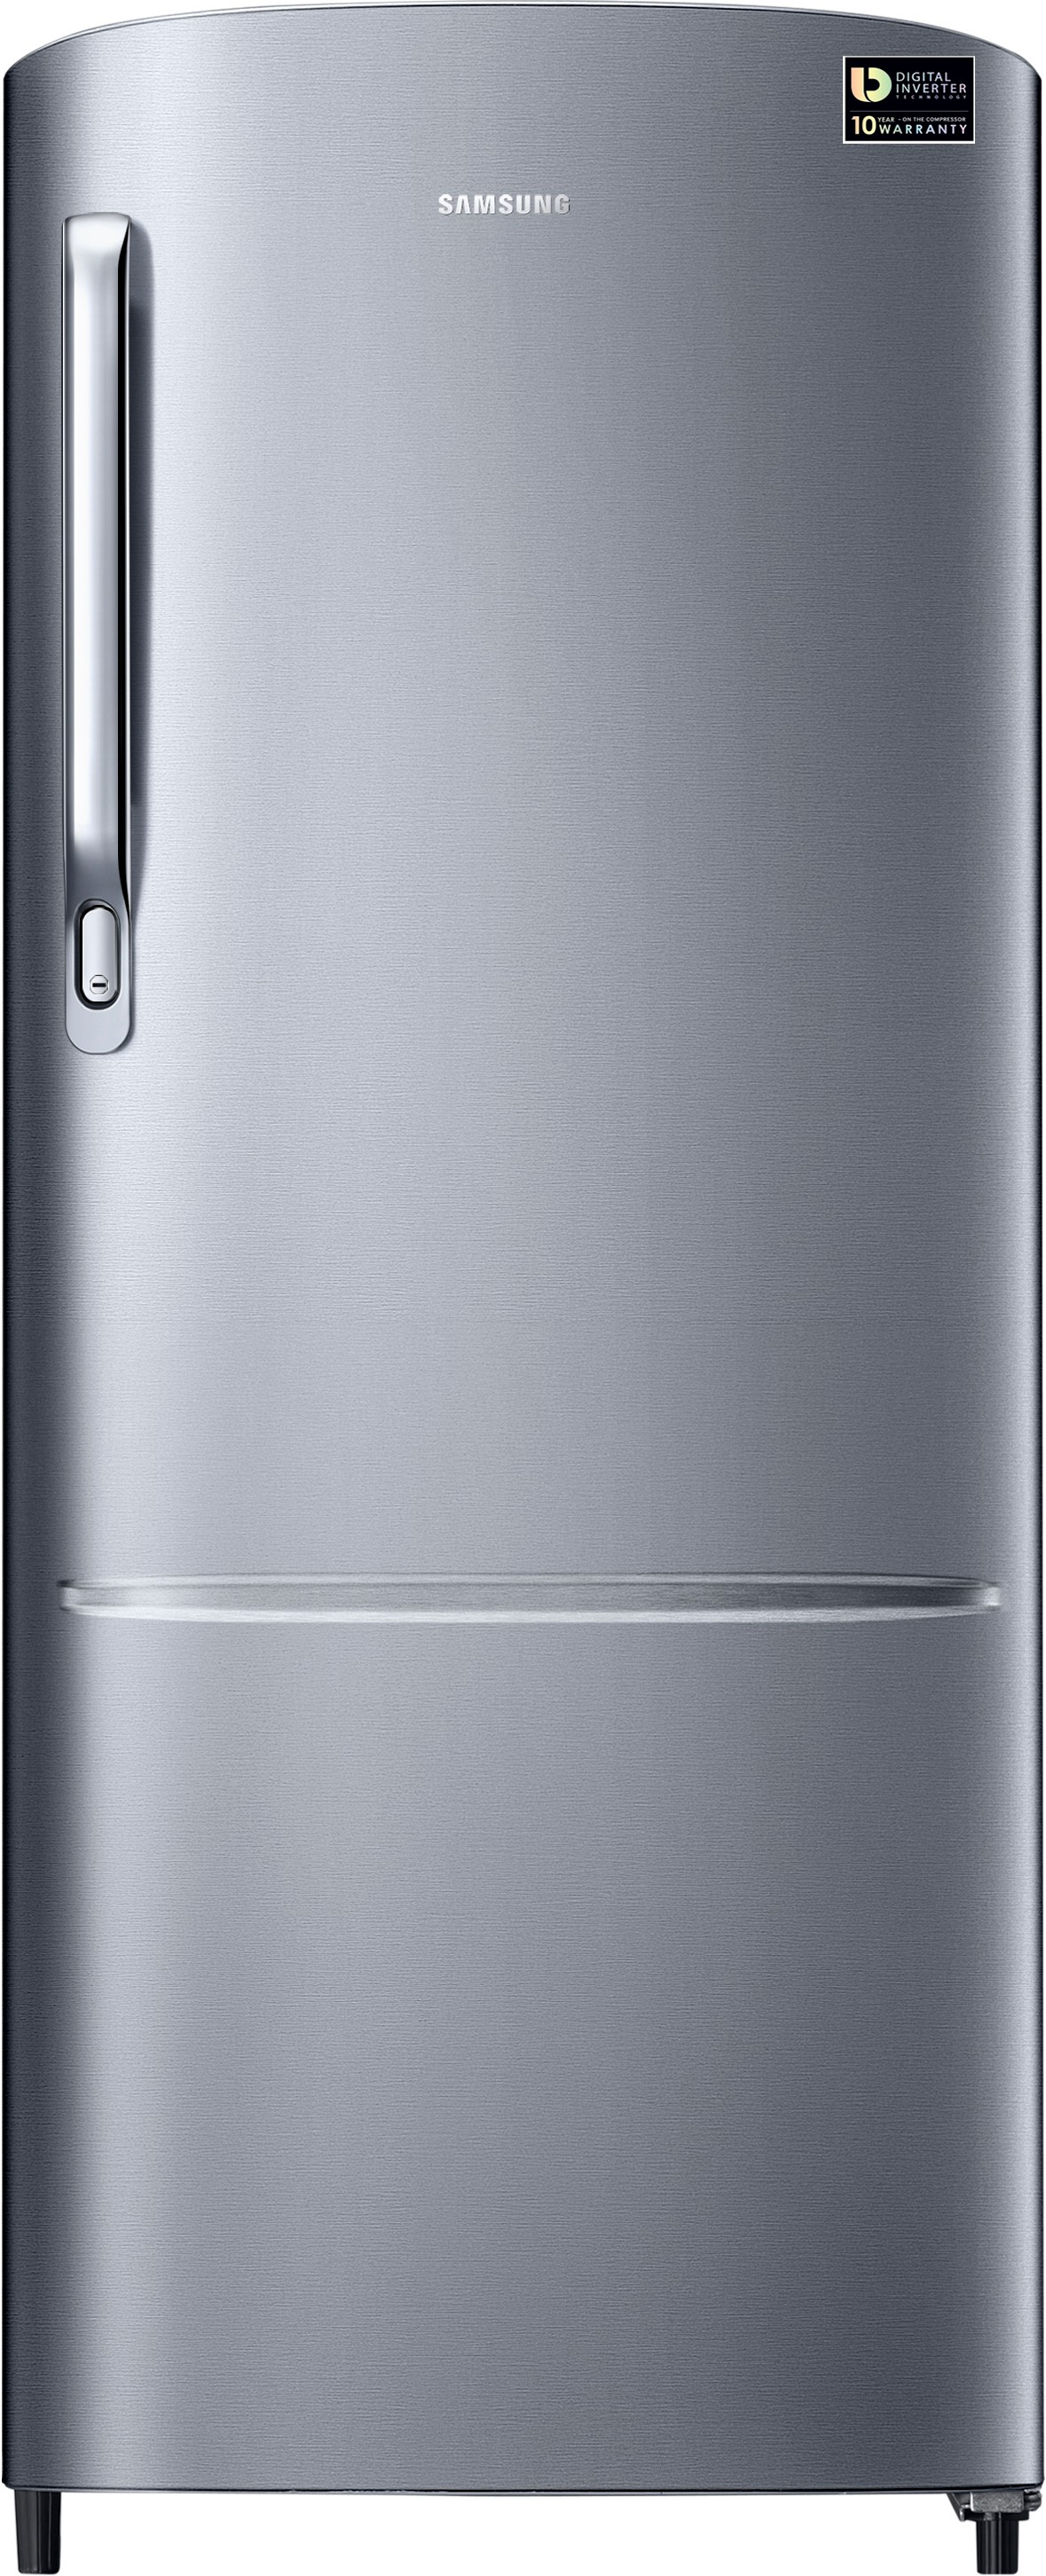 View SAMSUNG 212 L Direct Cool Single Door Refrigerator(RR22M272ZS8/NL, Silver, 2017)  Price Online